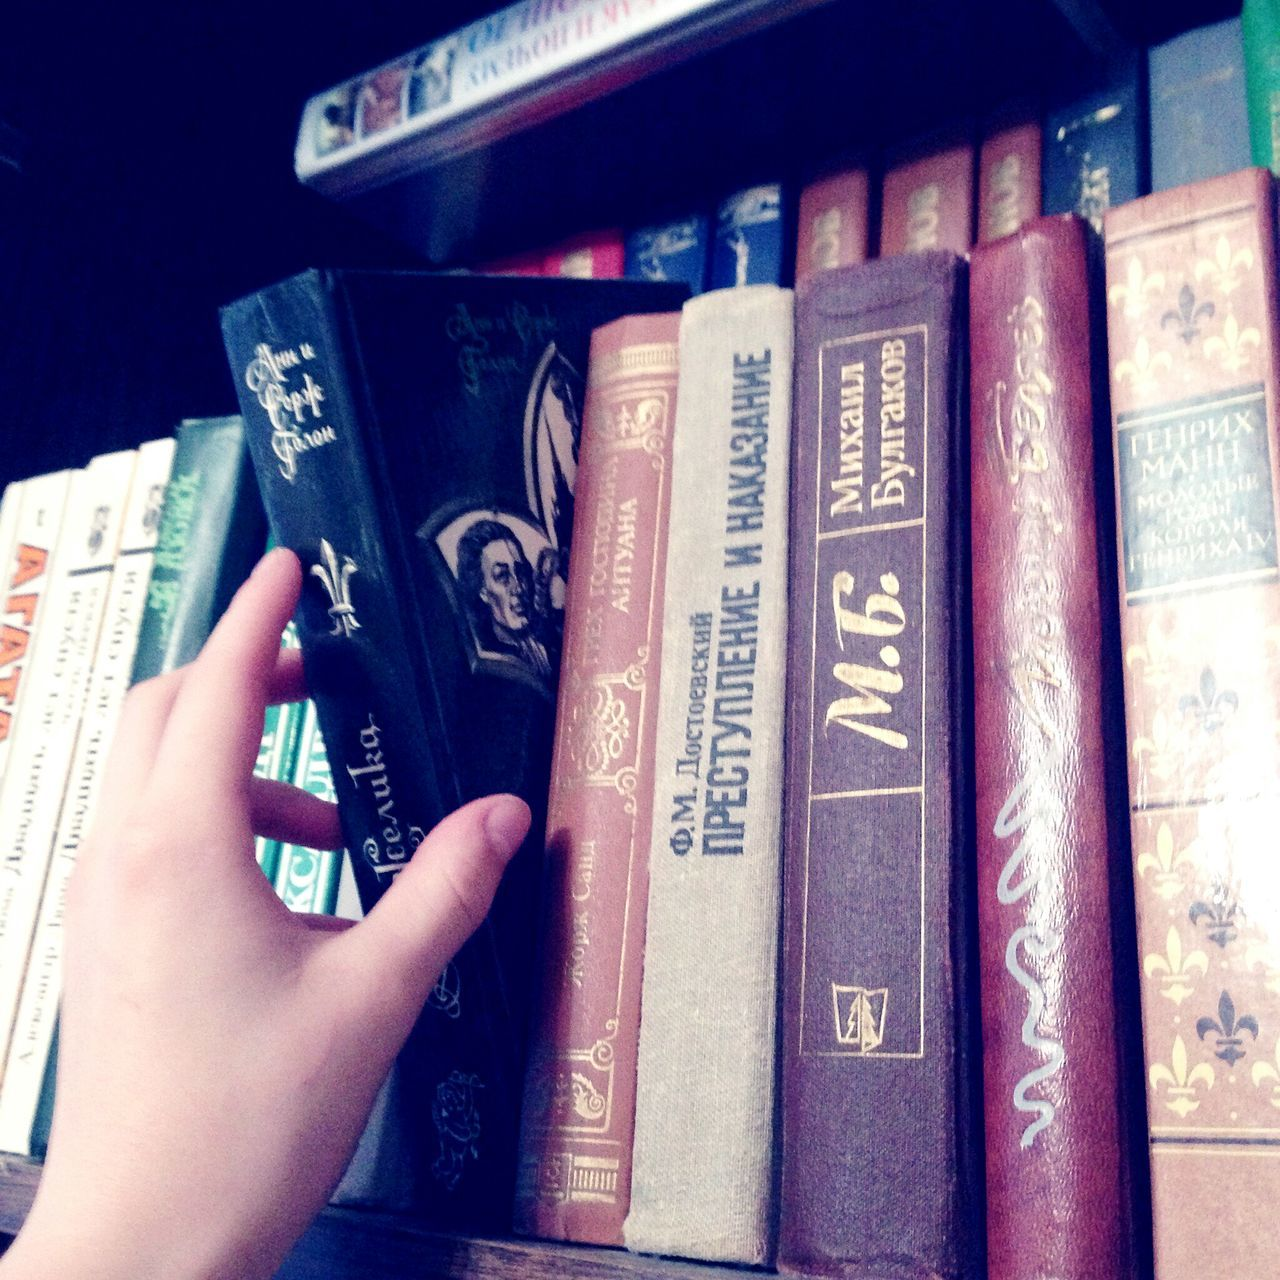 book, human hand, education, learning, literature, real people, indoors, one person, human body part, close-up, bookshelf, library, day, people